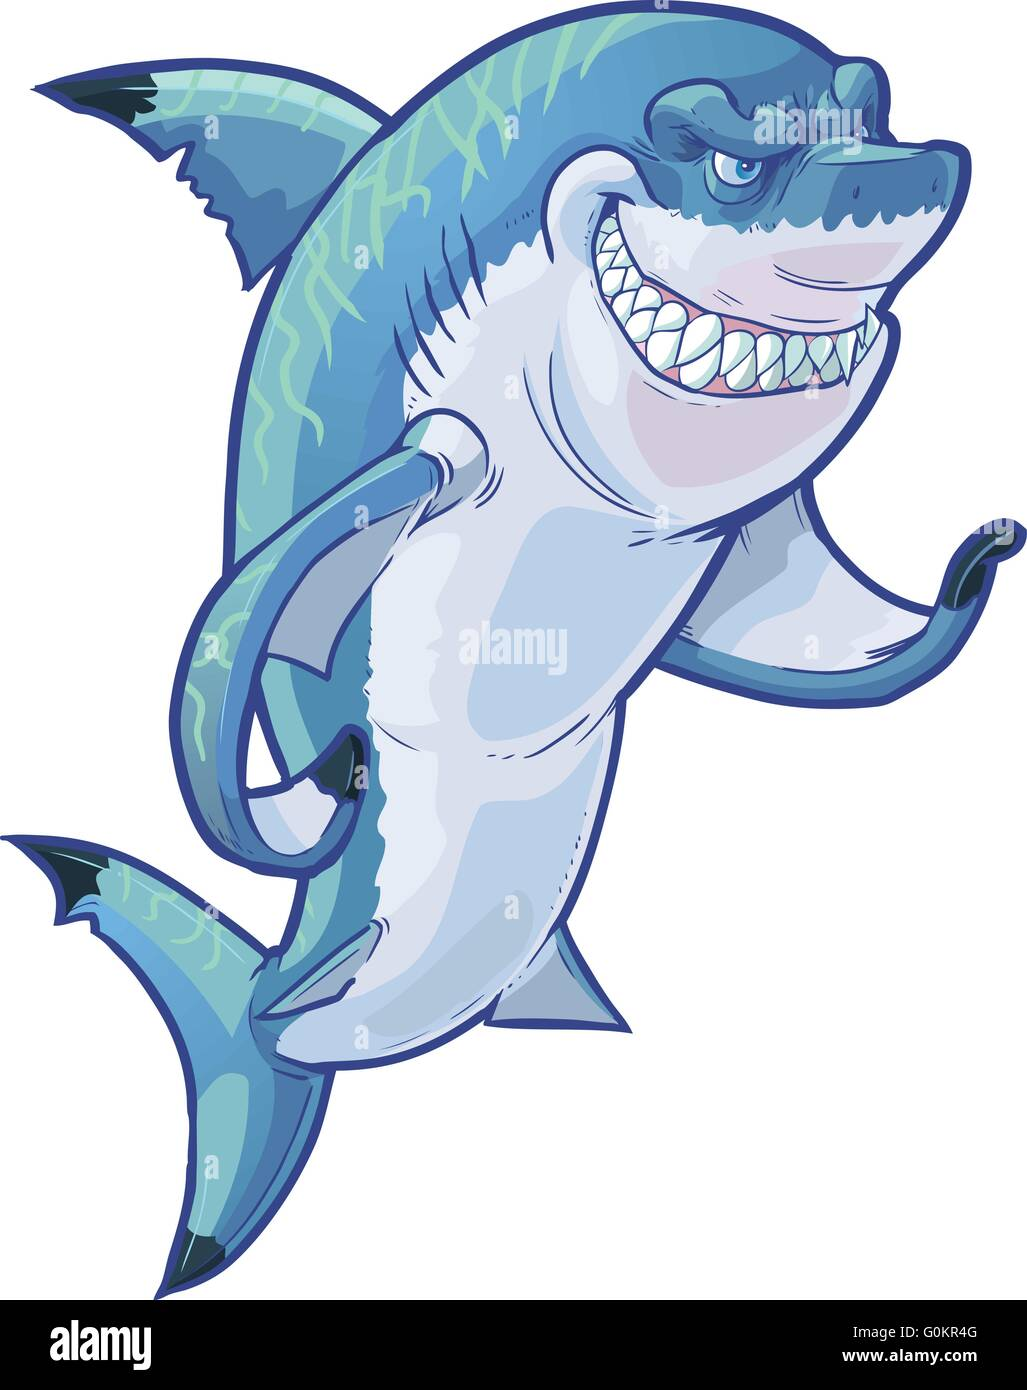 Vector cartoon clip art illustration of a tough mean smiling shark mascot gesturing with its pectoral fin. - Stock Image